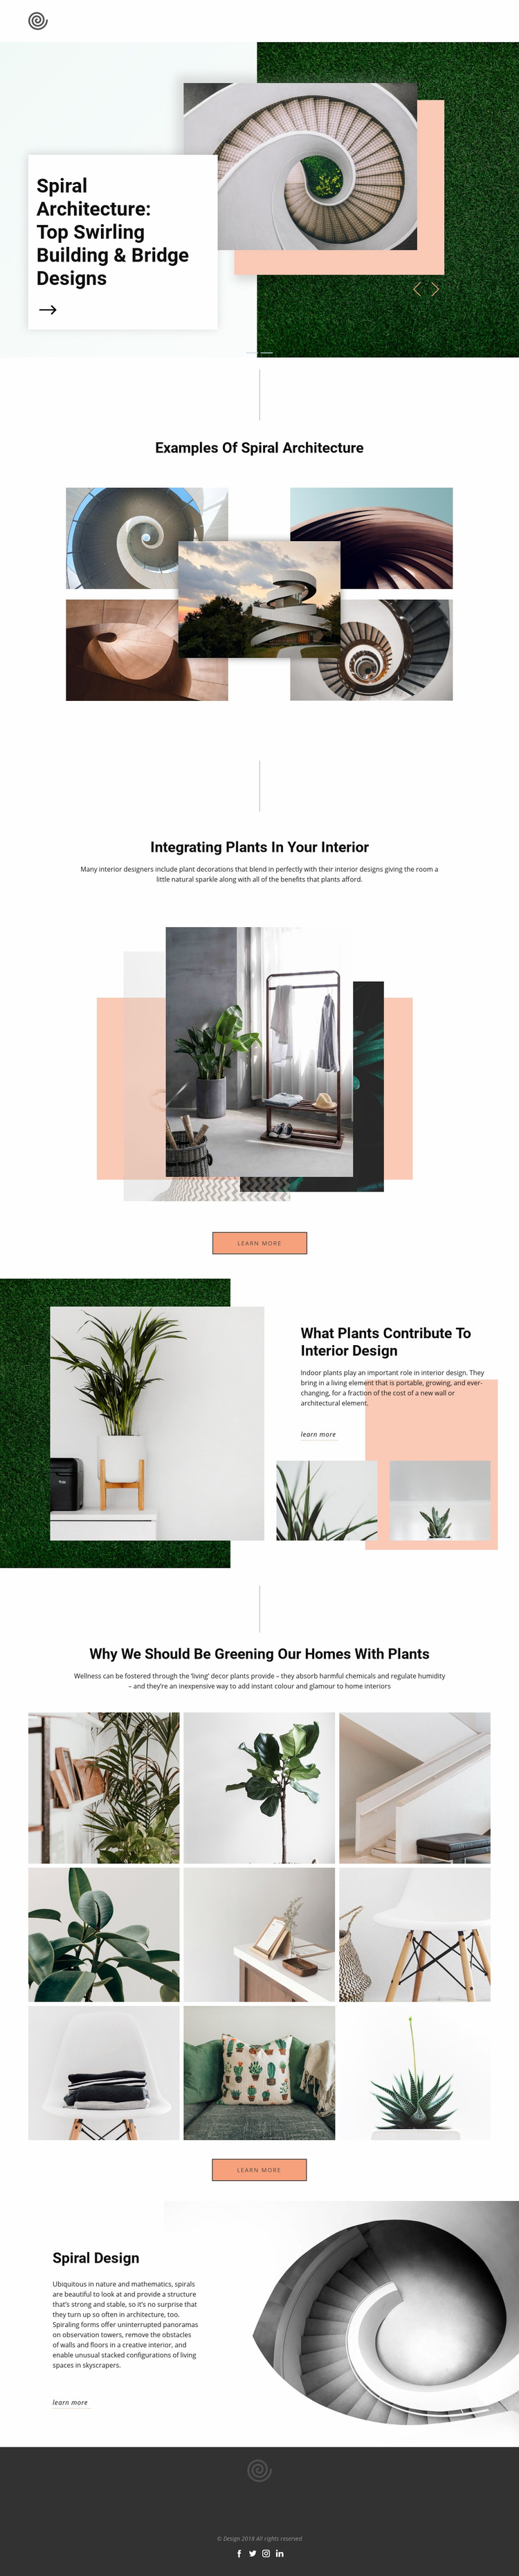 Spiral Architecture Landing Page